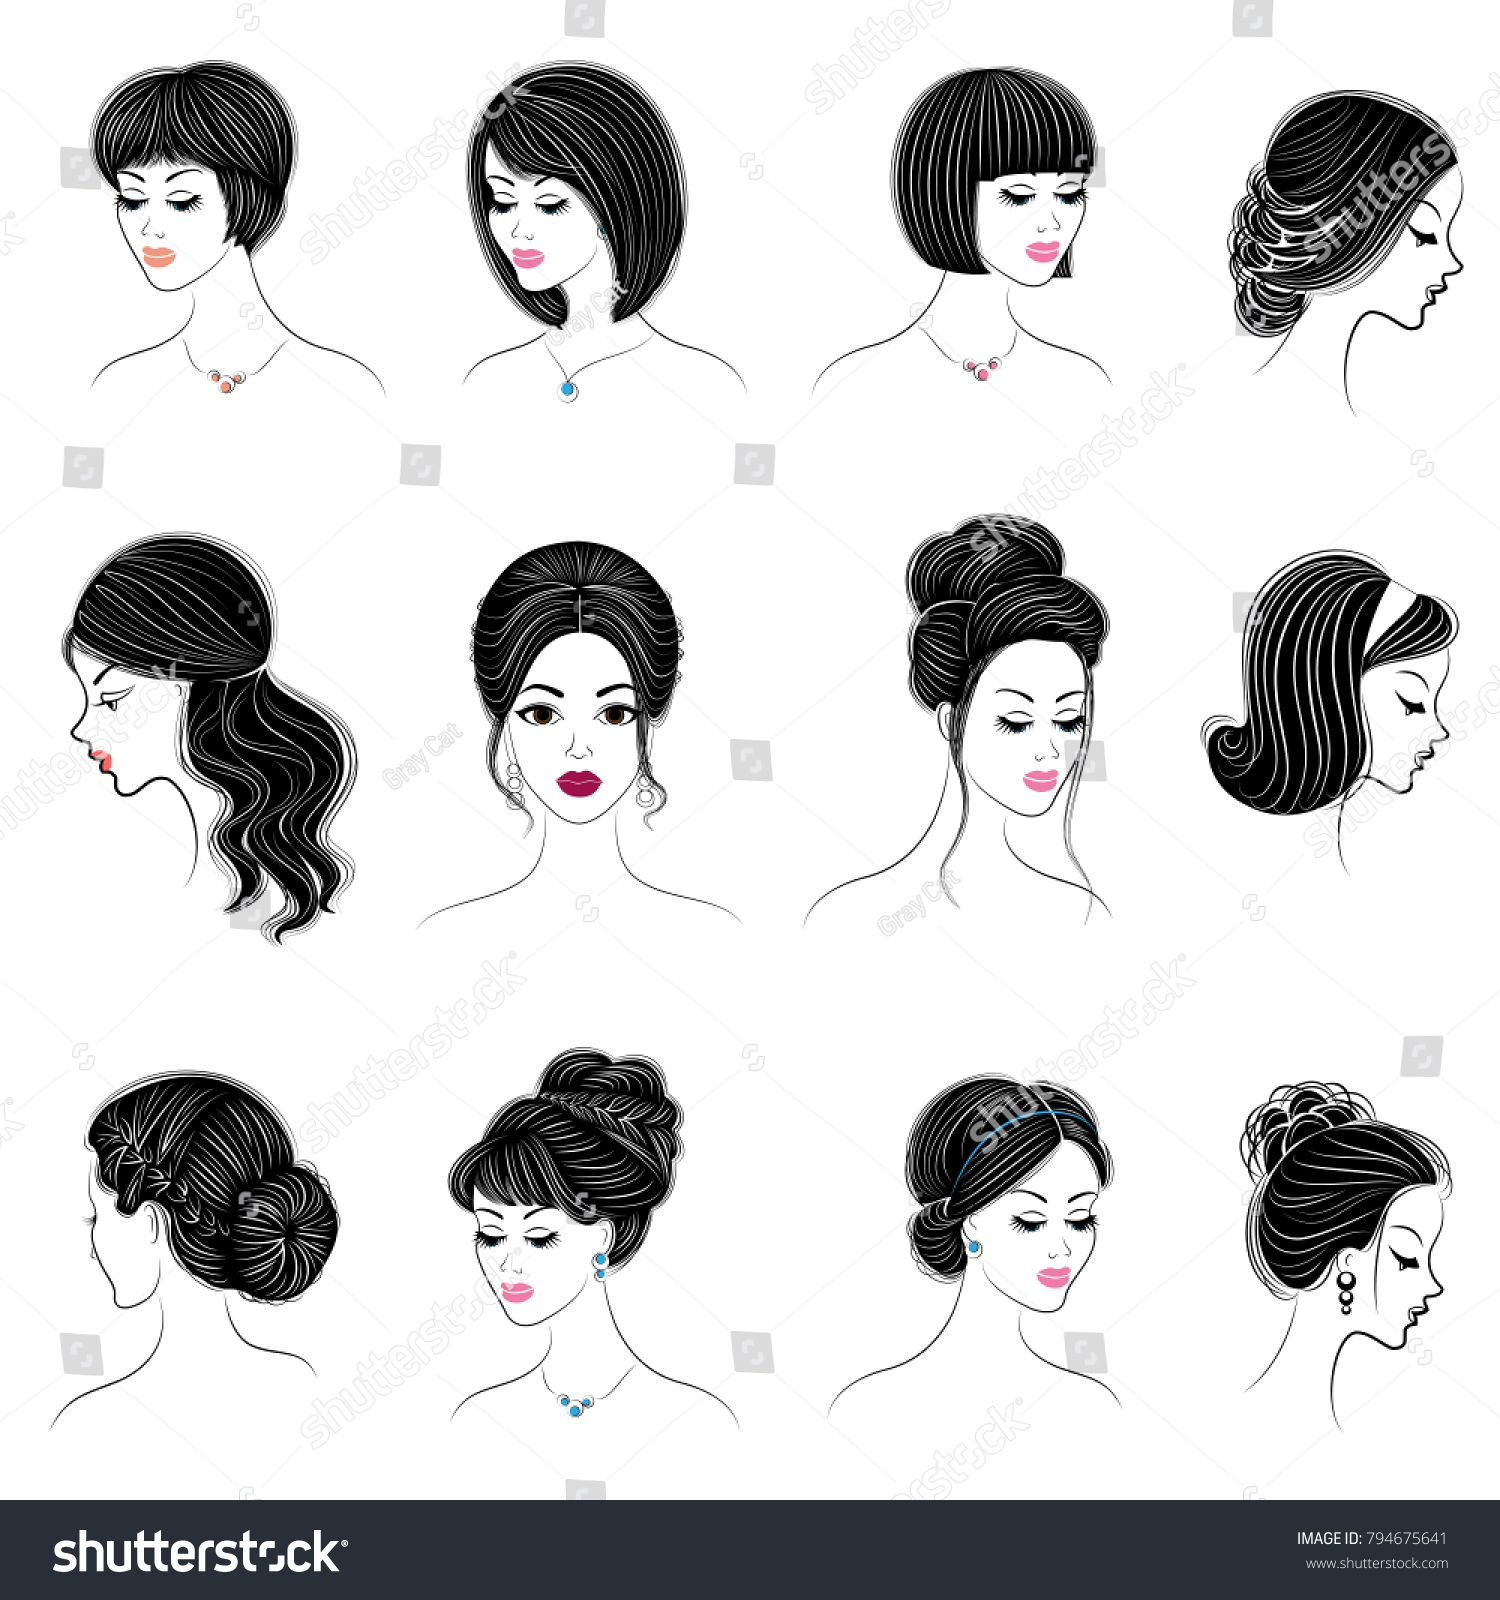 Collection Silhouettes Head Lovely Ladies Girls Stock Vector ...